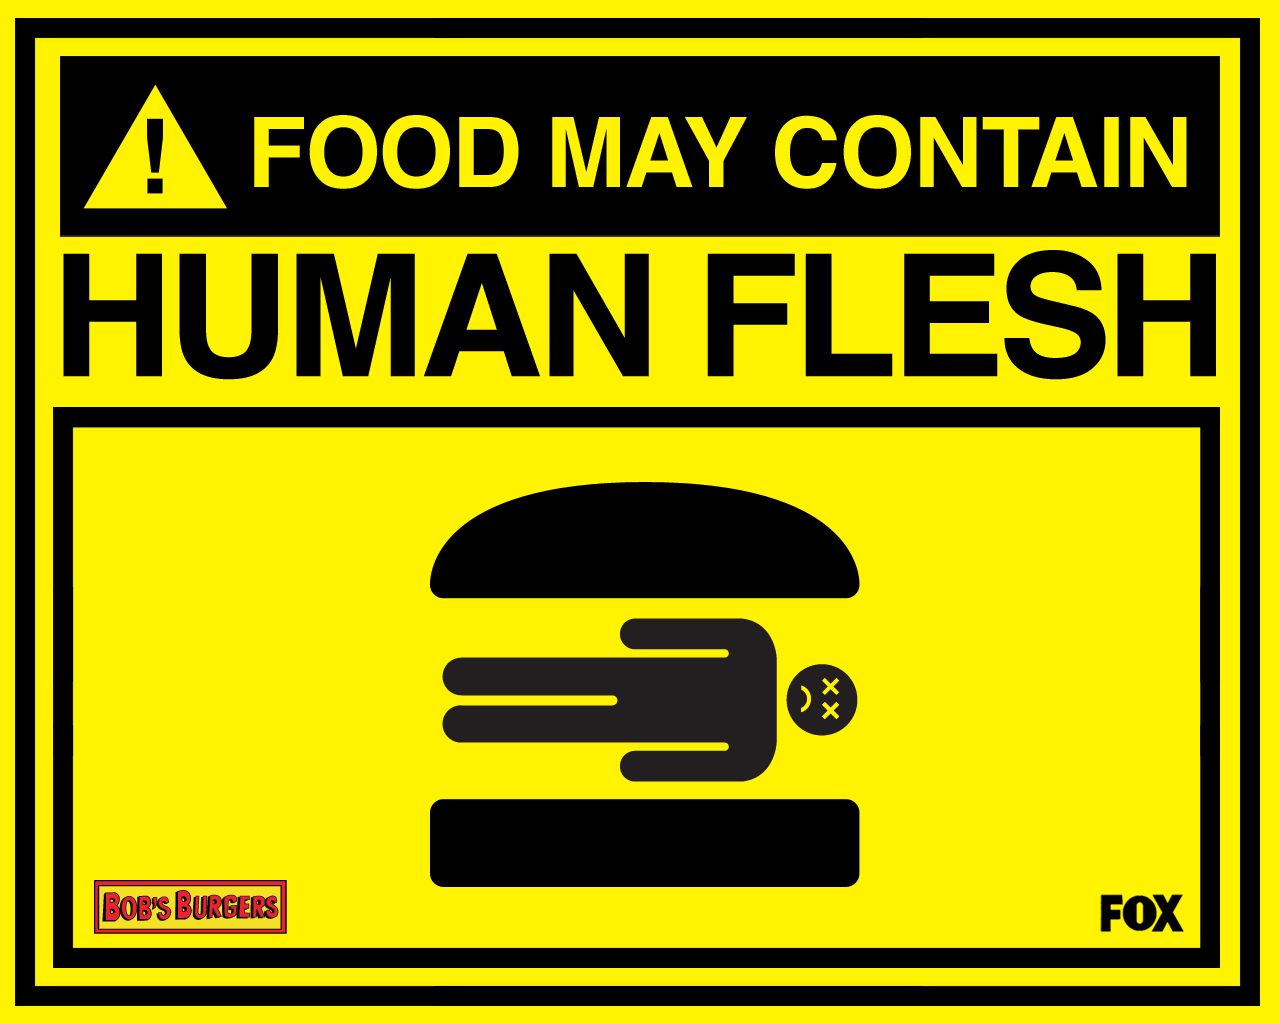 Food man contain human flesh.jpg